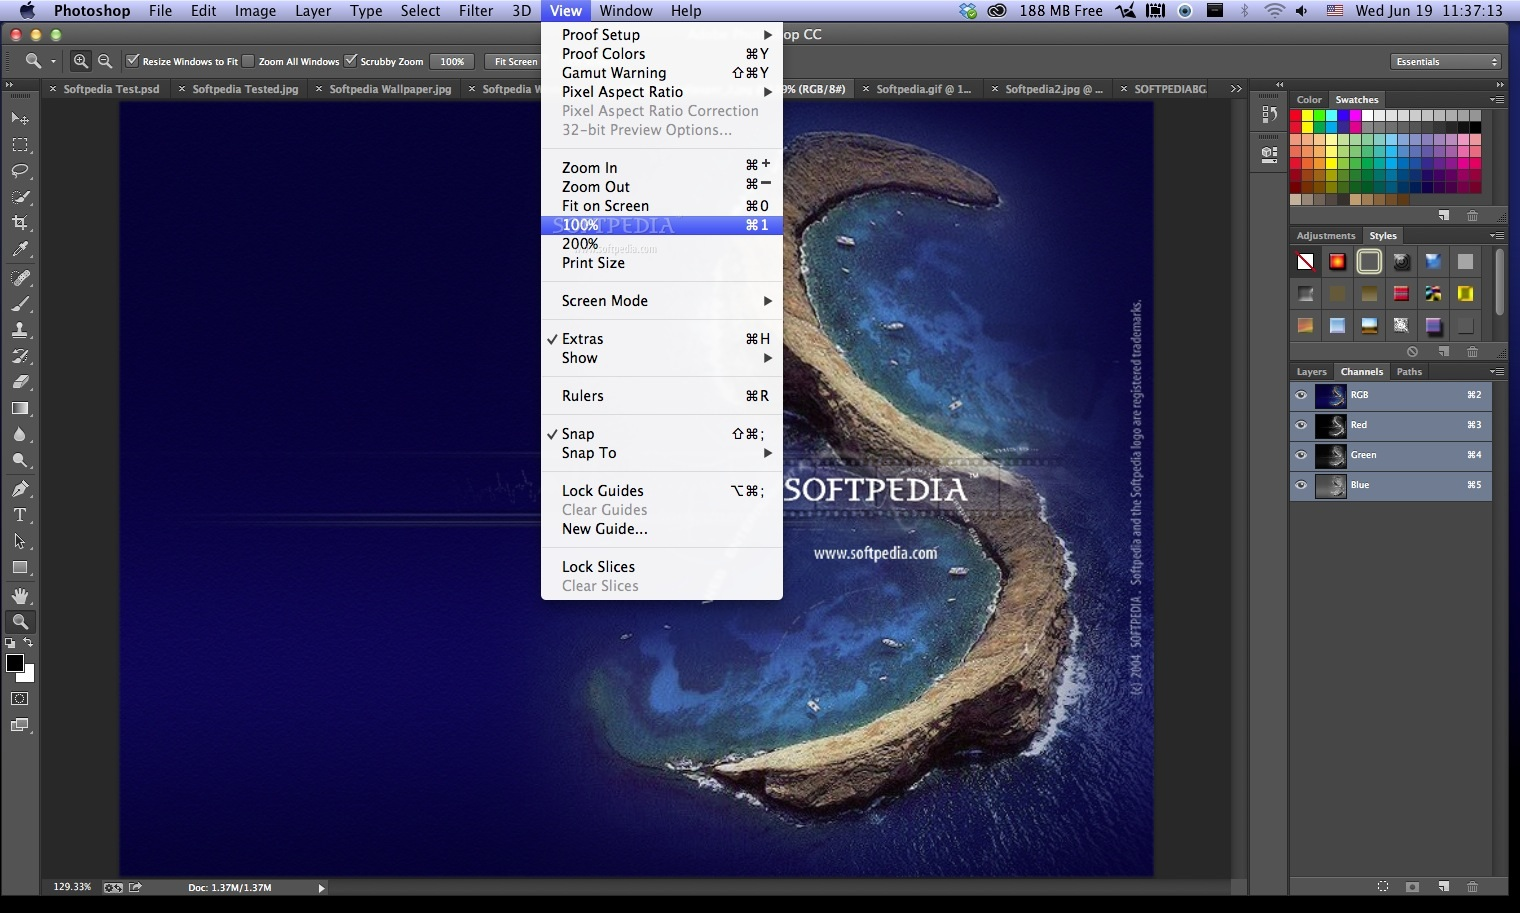 Adobe Photoshop screenshot 11